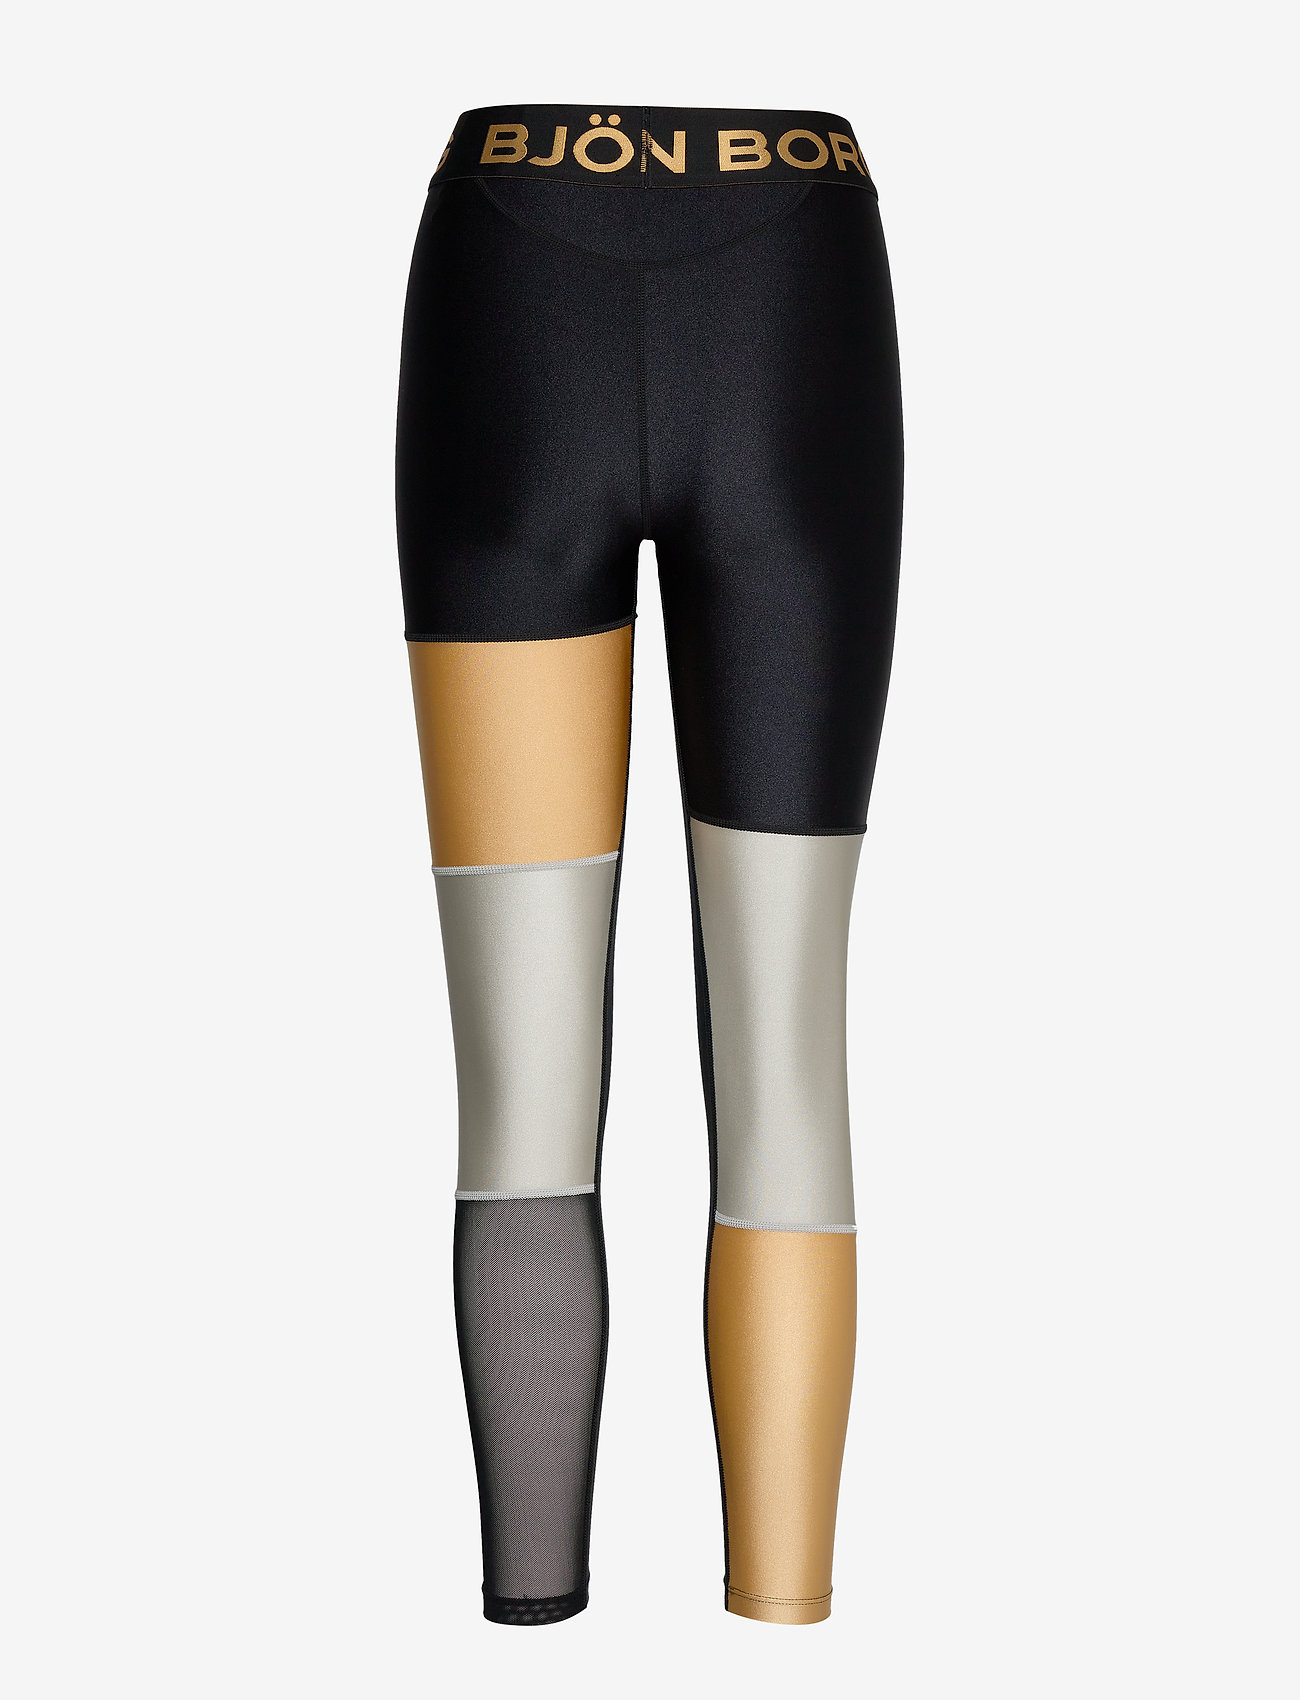 Björn Borg BLOCKED TIGHTS CENDALL CENDALL - Leginsy BLACK GOLD - Kobiety Odzież.